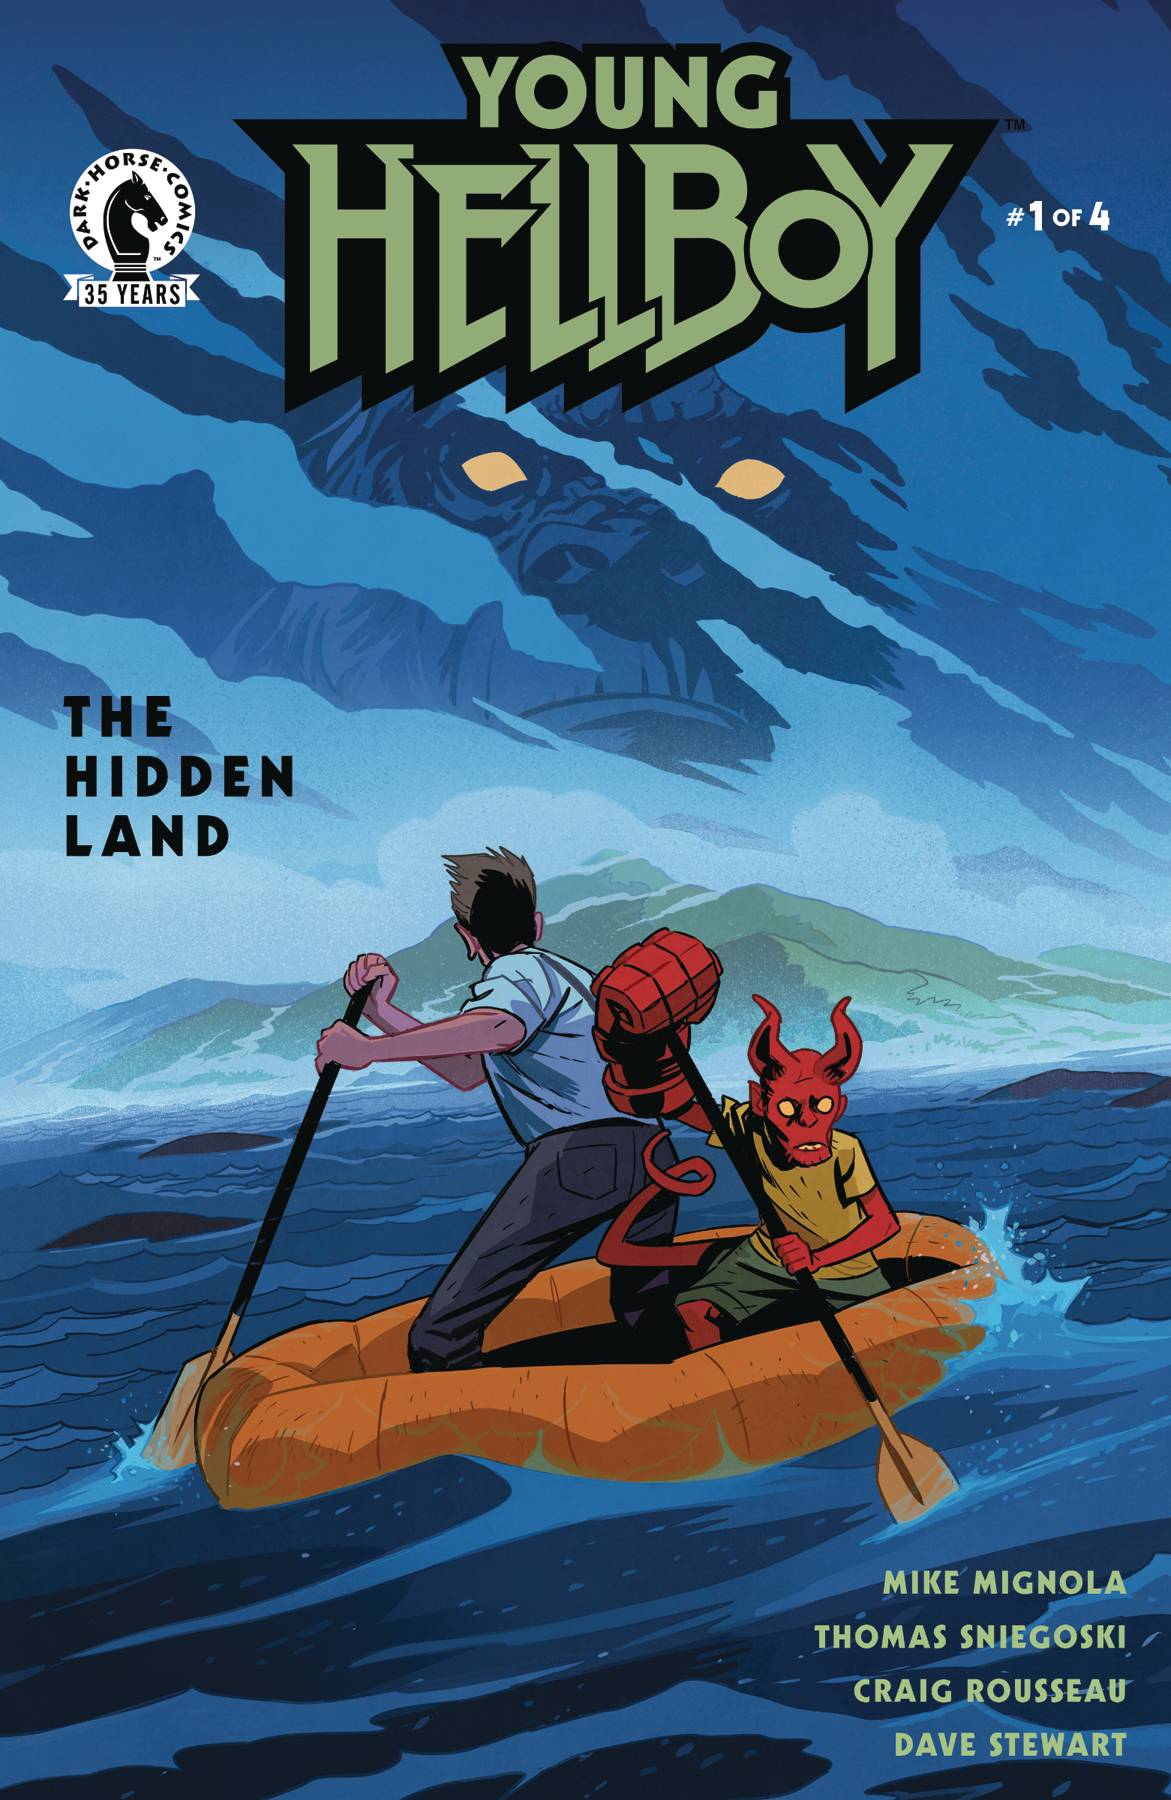 YOUNG HELLBOY THE HIDDEN LAND #1 (OF 4)